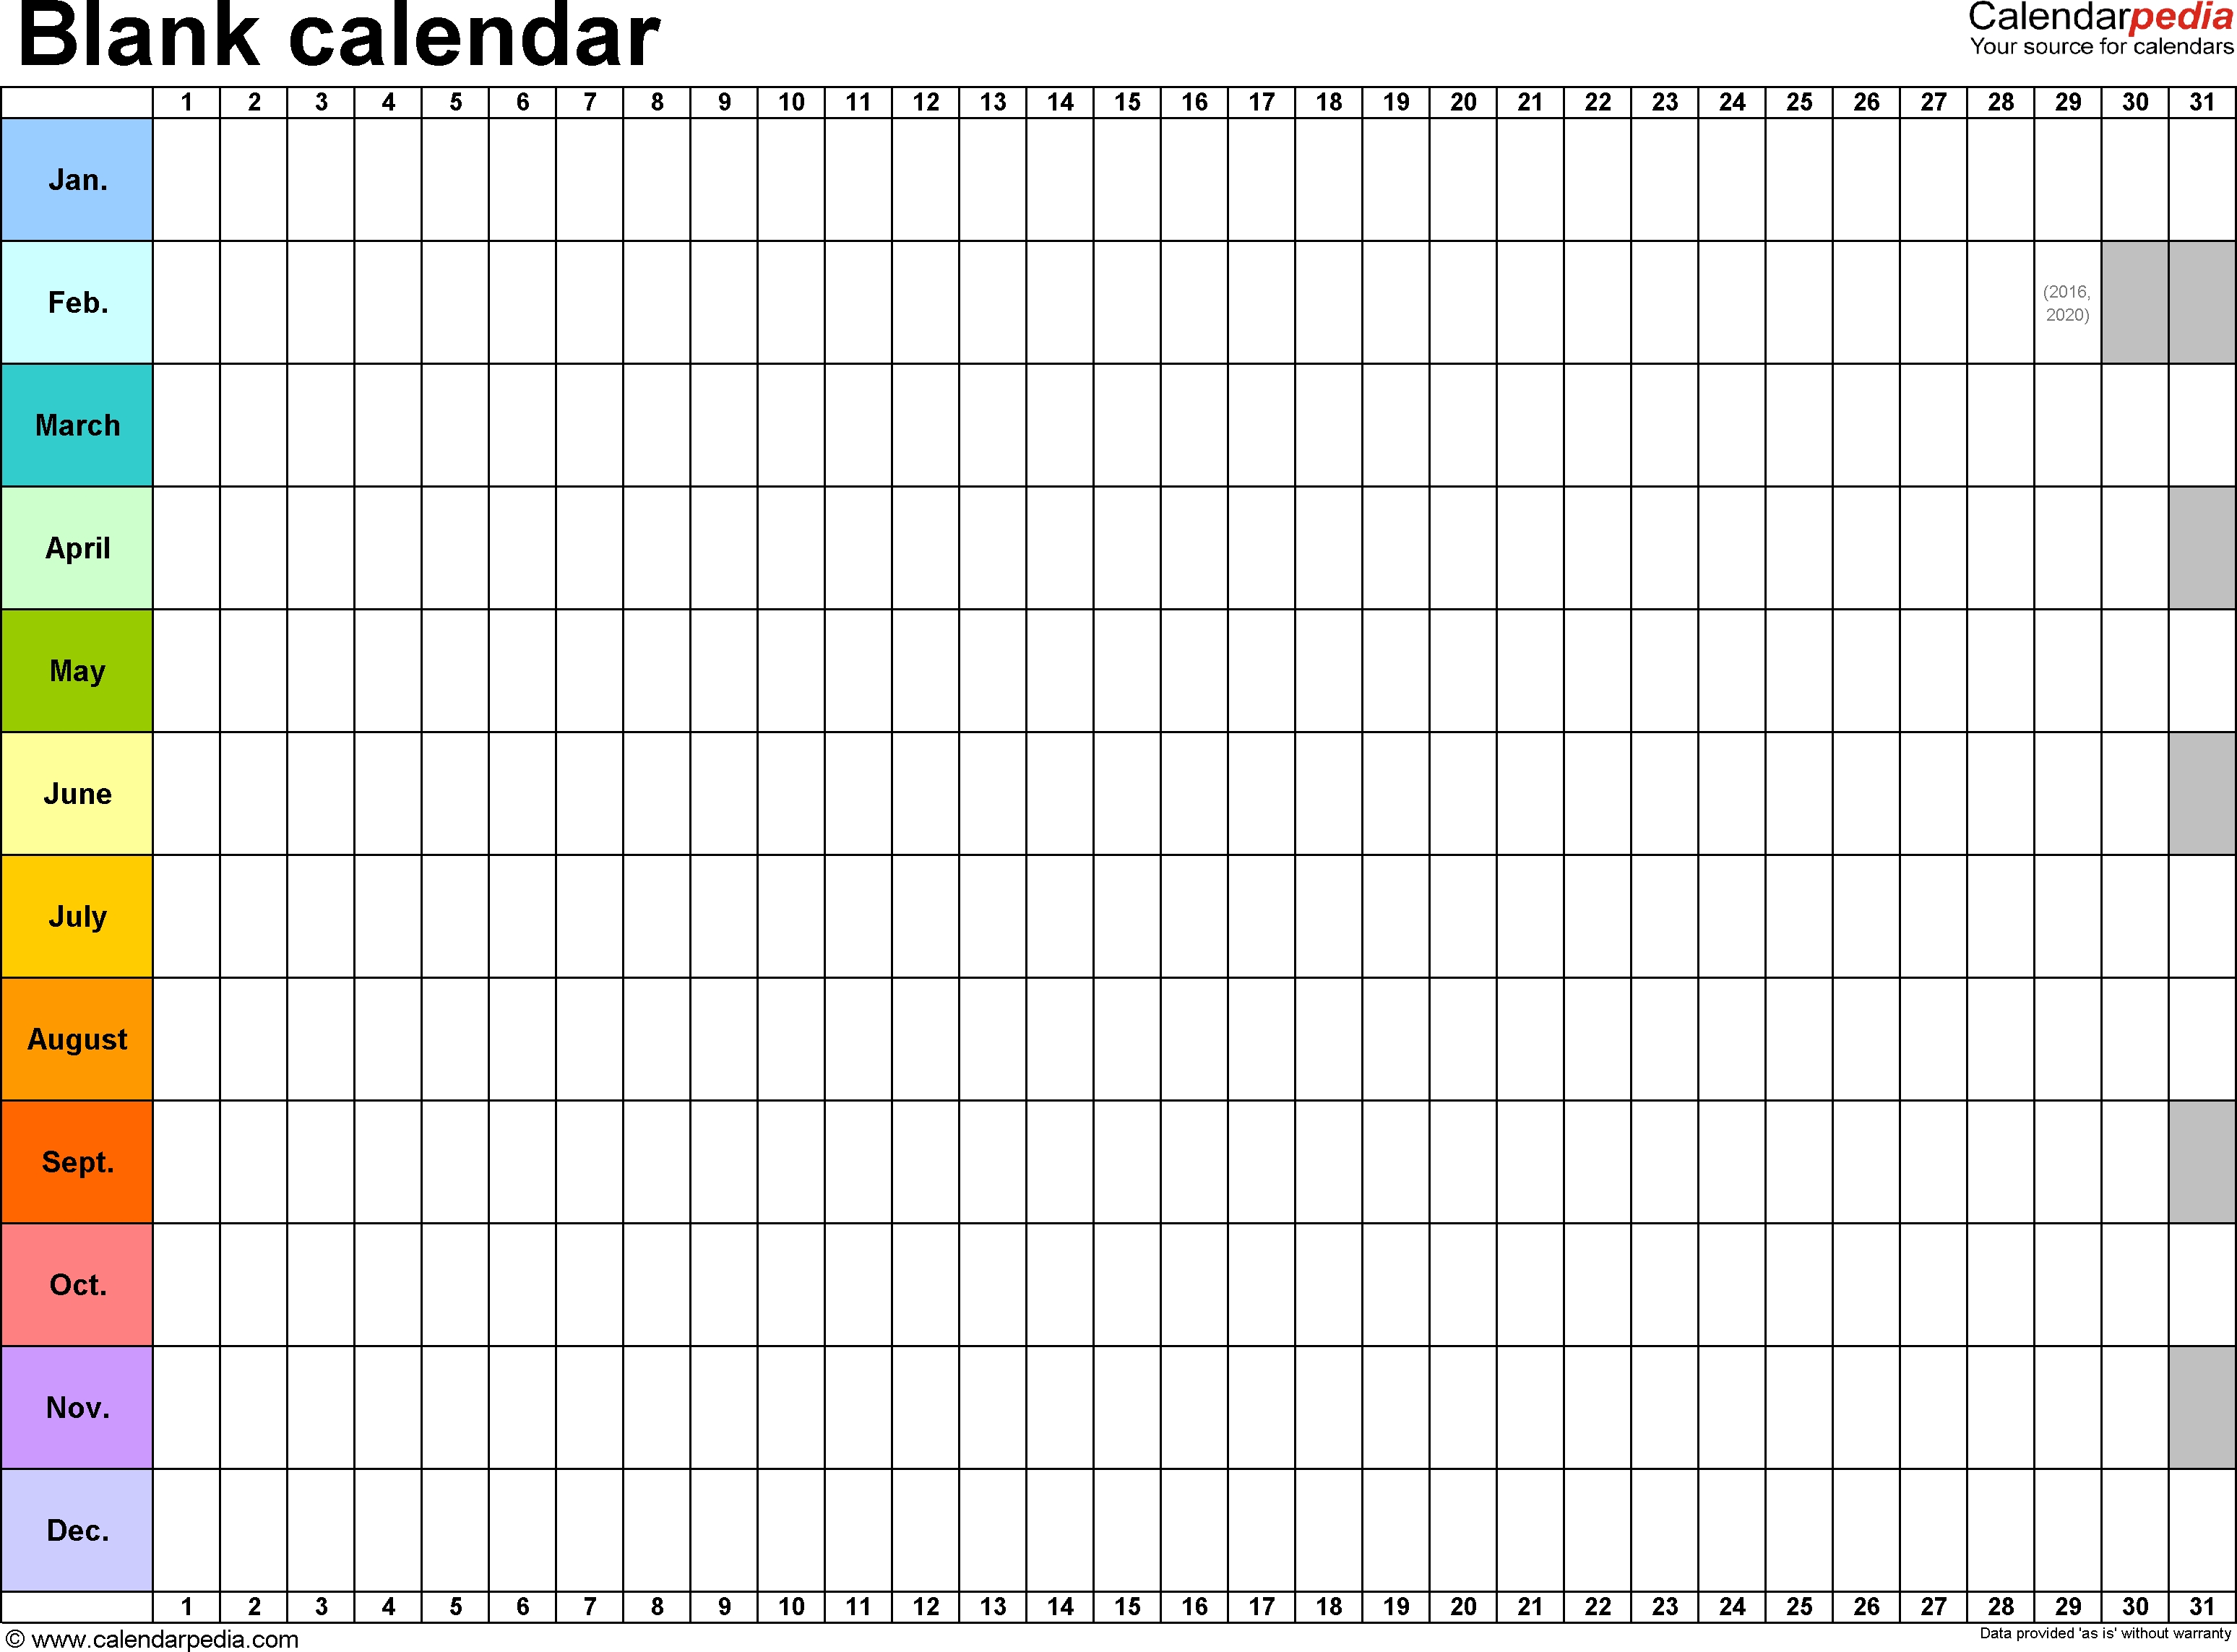 Monthly Schedule Template Blank Calendar Free Printable Icrosoft Blank Calendar Template By Month